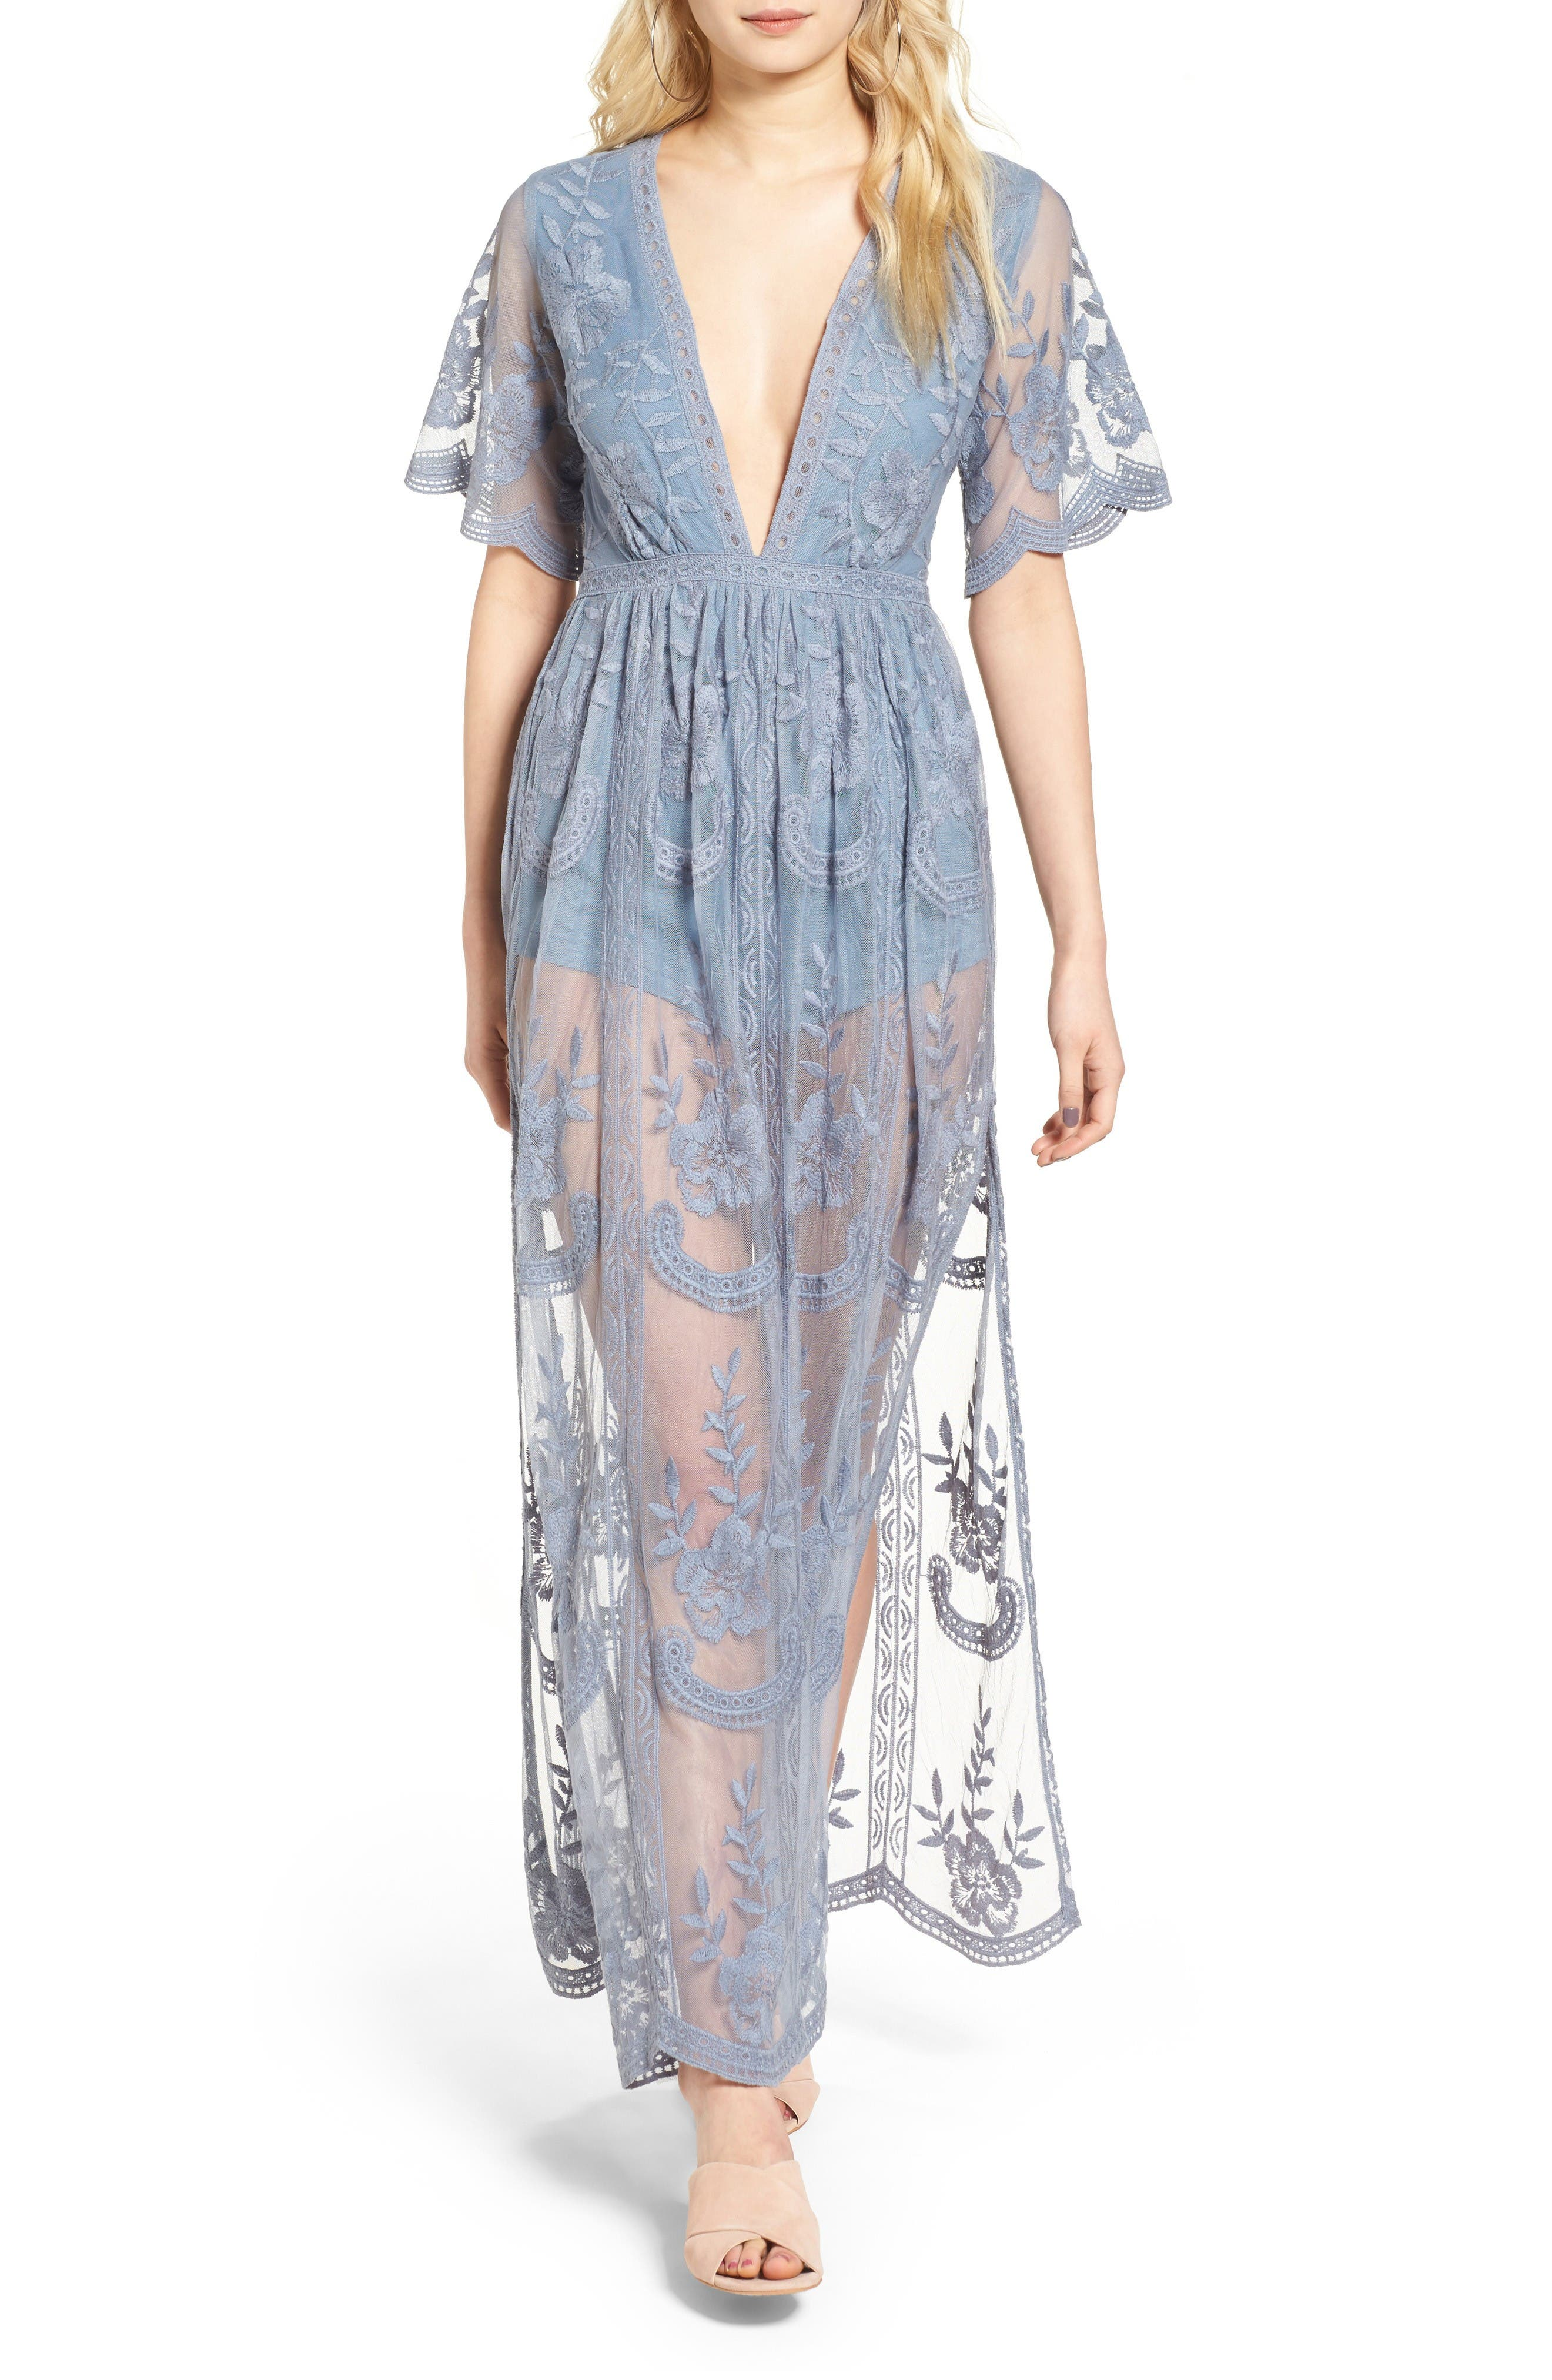 Alternate Image 1 Selected - Socialite Lace Overlay Romper